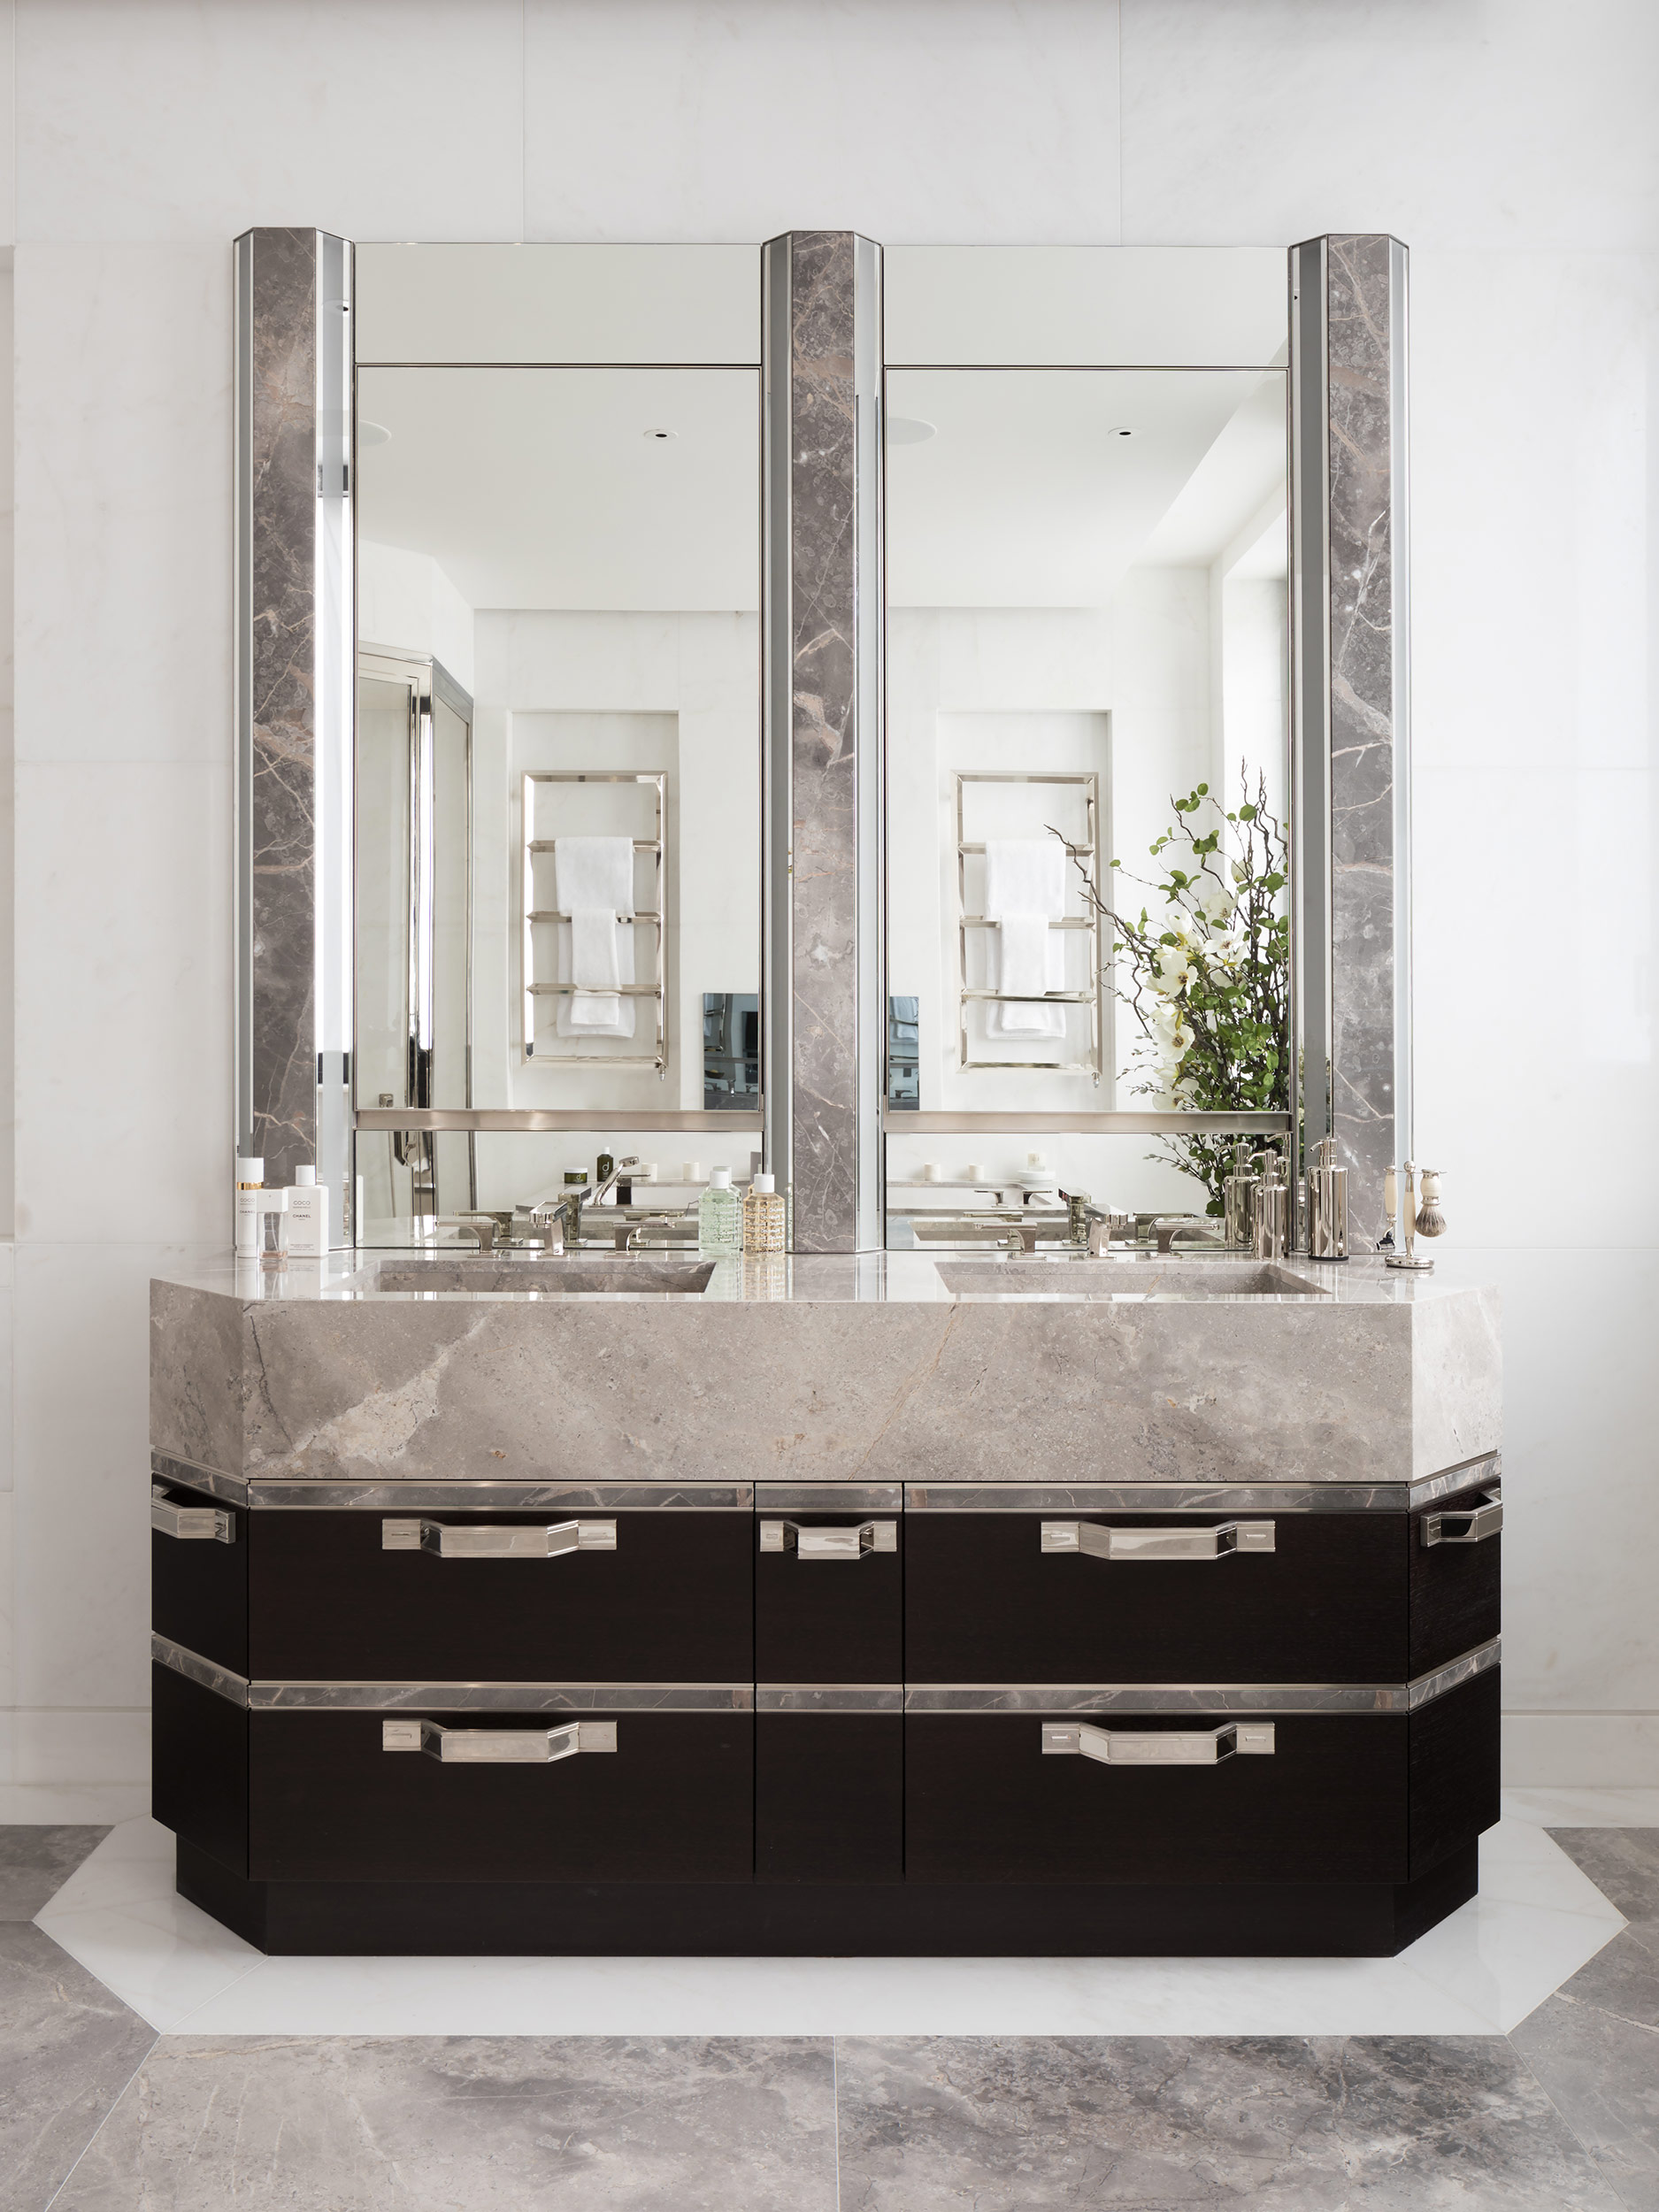 West One Bathrooms Case Studies Luxlo Penthouse Bathroom 6b